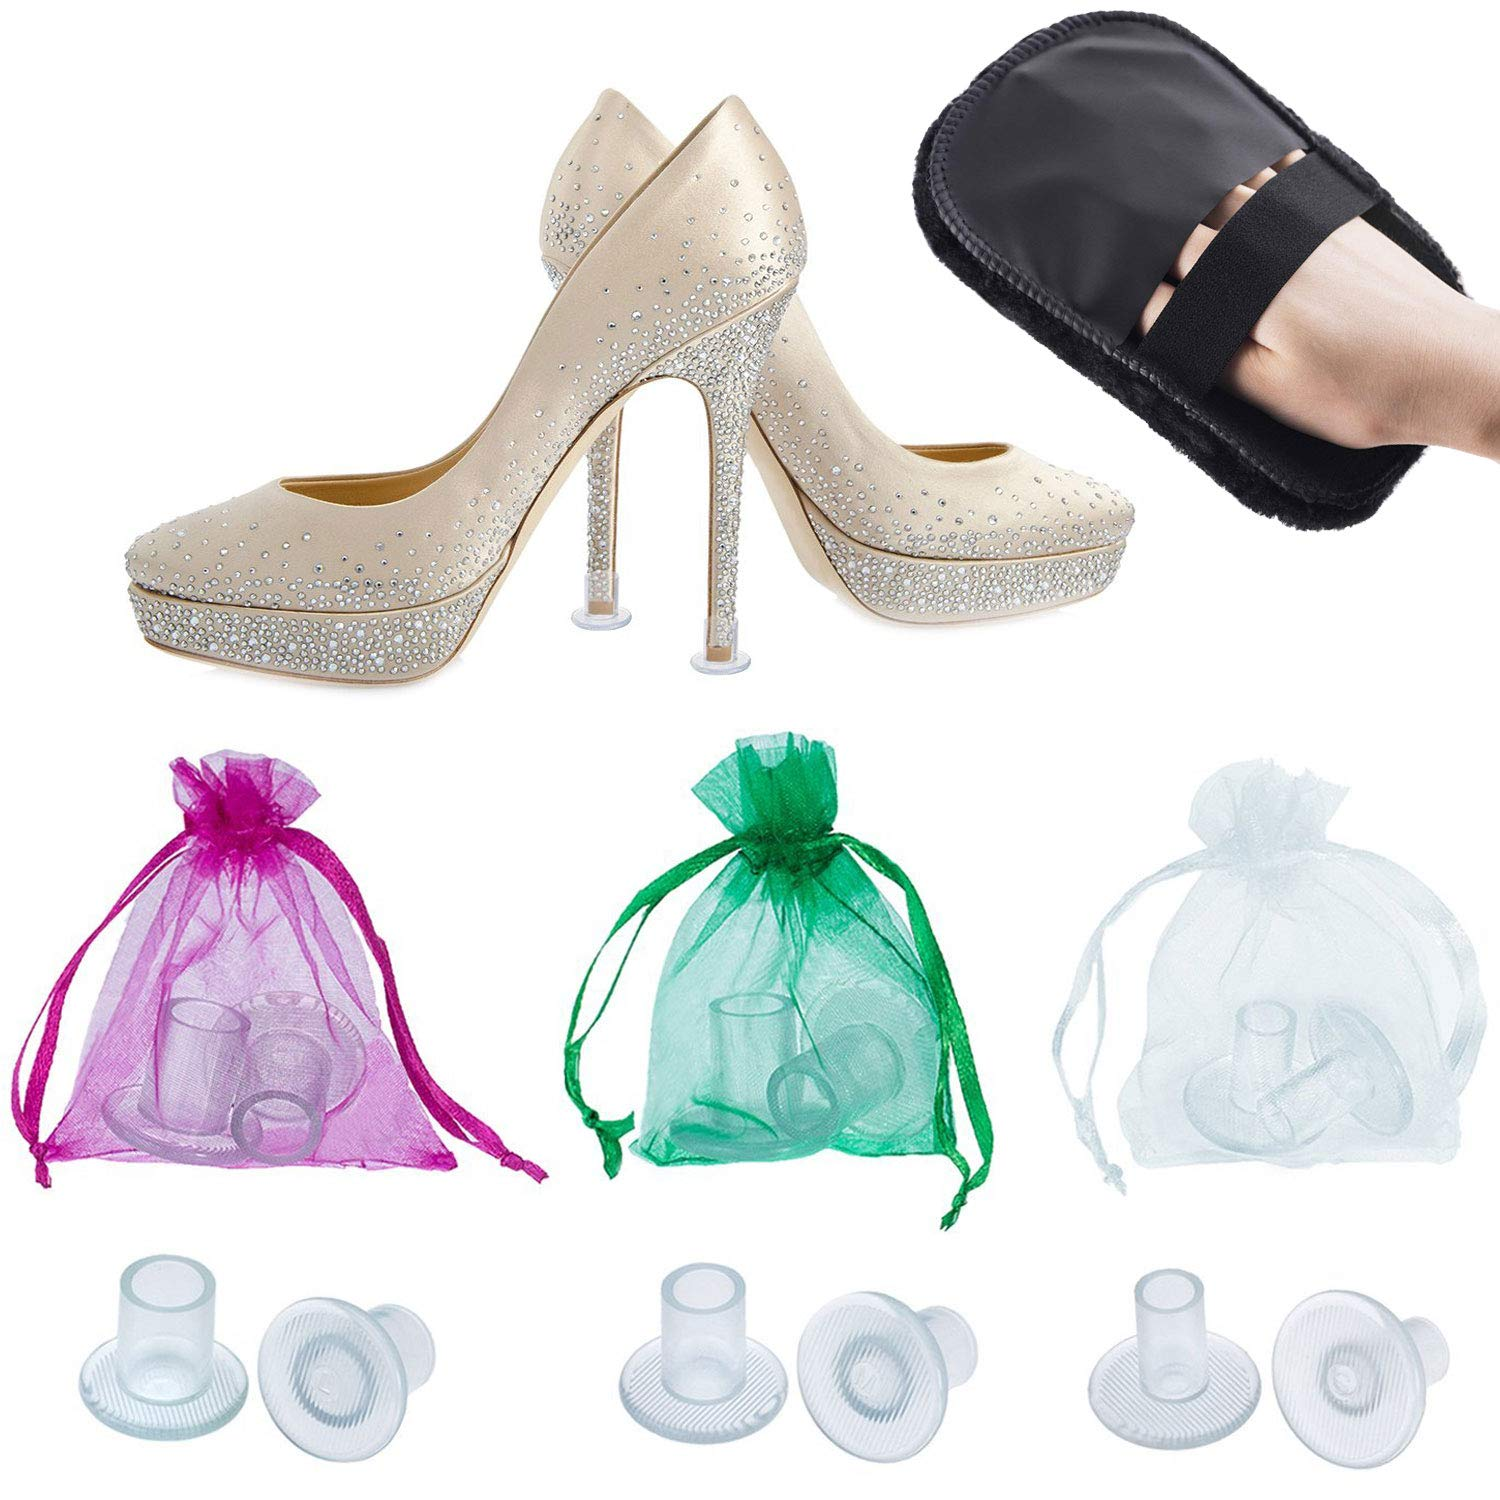 342c17cfd1a High Heel Protectors by MEGON - Heels Stopper for Women's Shoes, 6 pairs  Small/Medium/Large - Perfect for Weddings, Races, Formal Occasions - ...